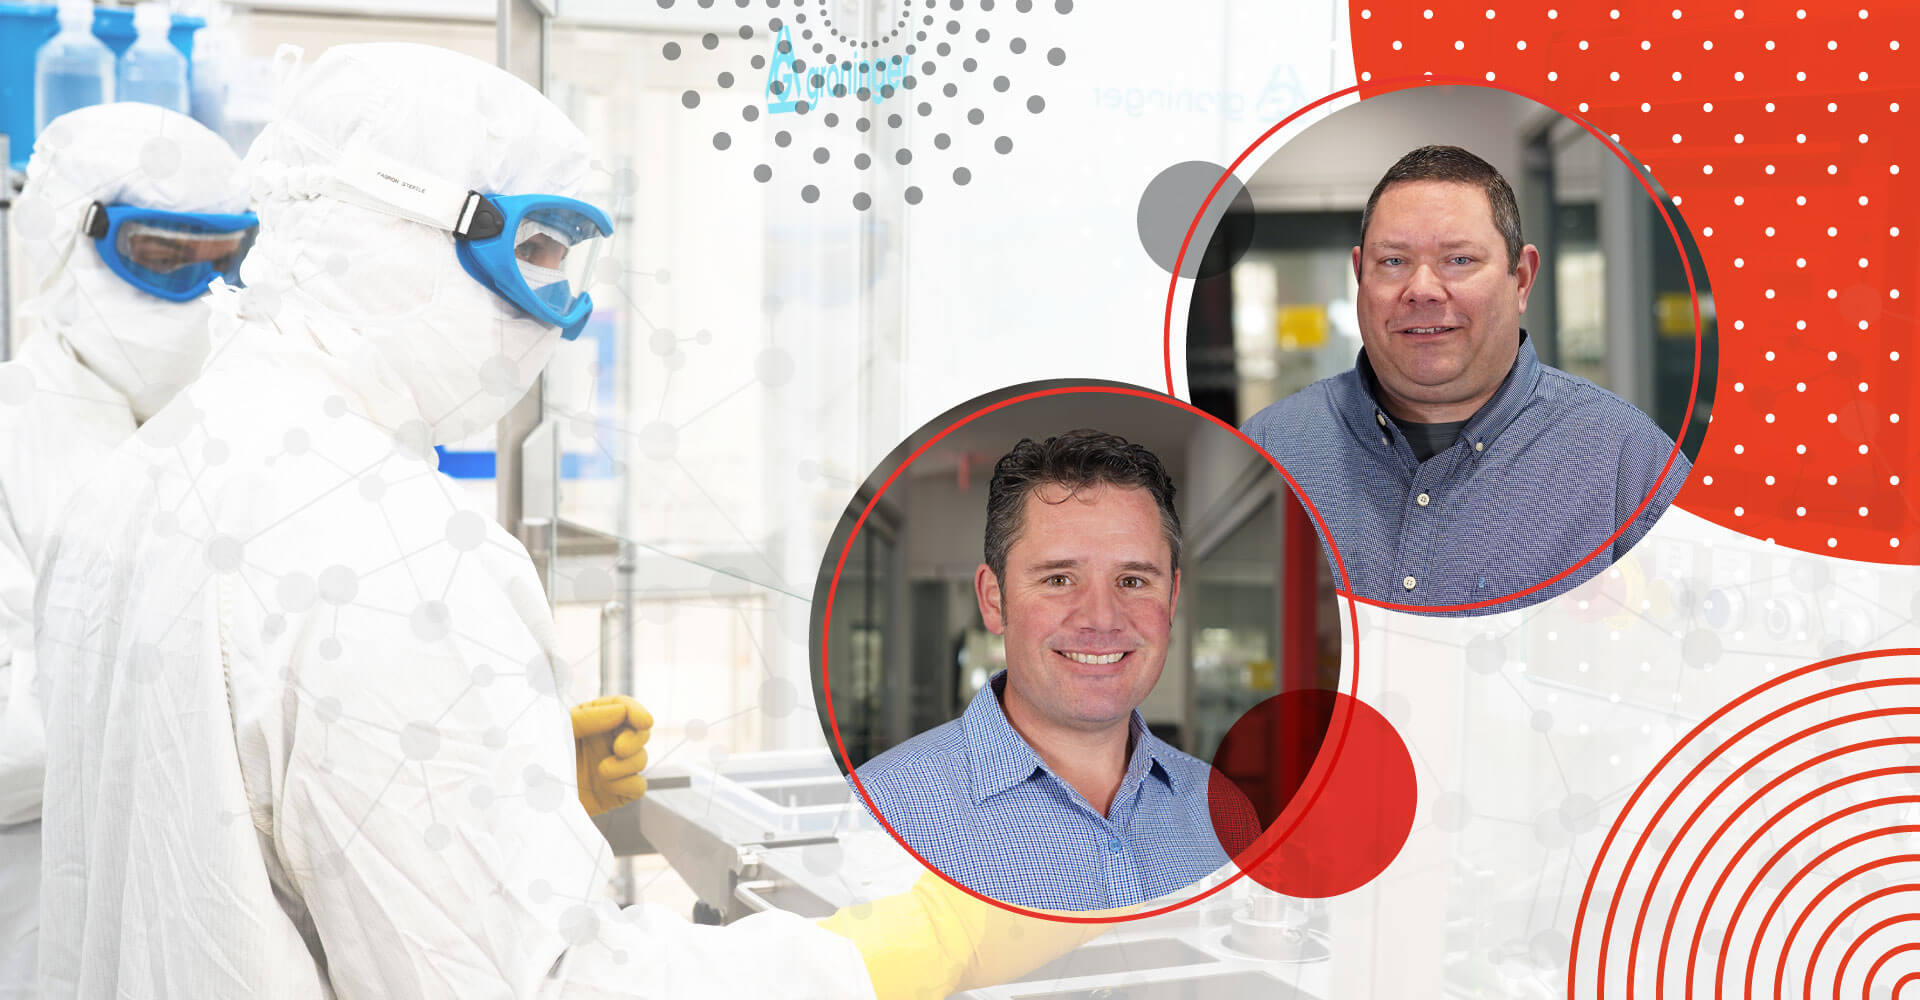 Jason McGuire and Josh Parks Collaborate with FDA and 503b Leaders